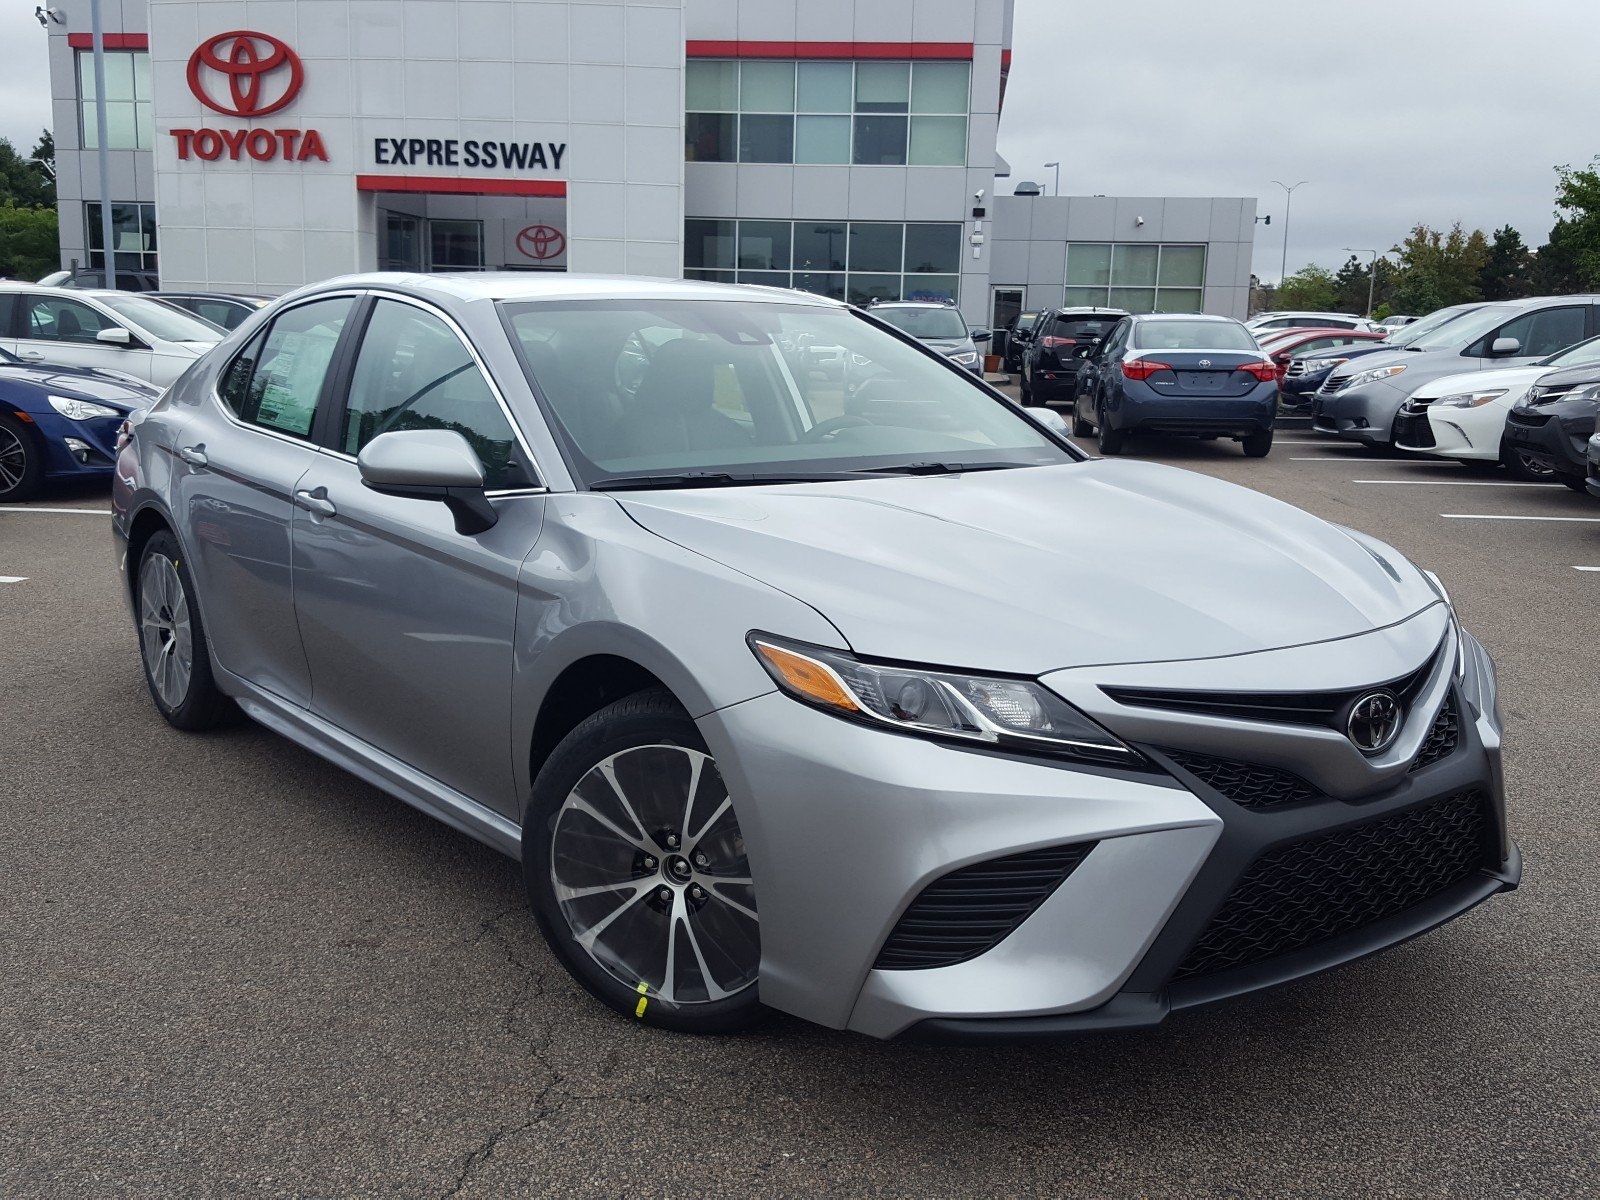 New 2019 Toyota Camry Se 4dr Car In Boston 24235 Expressway Toyota